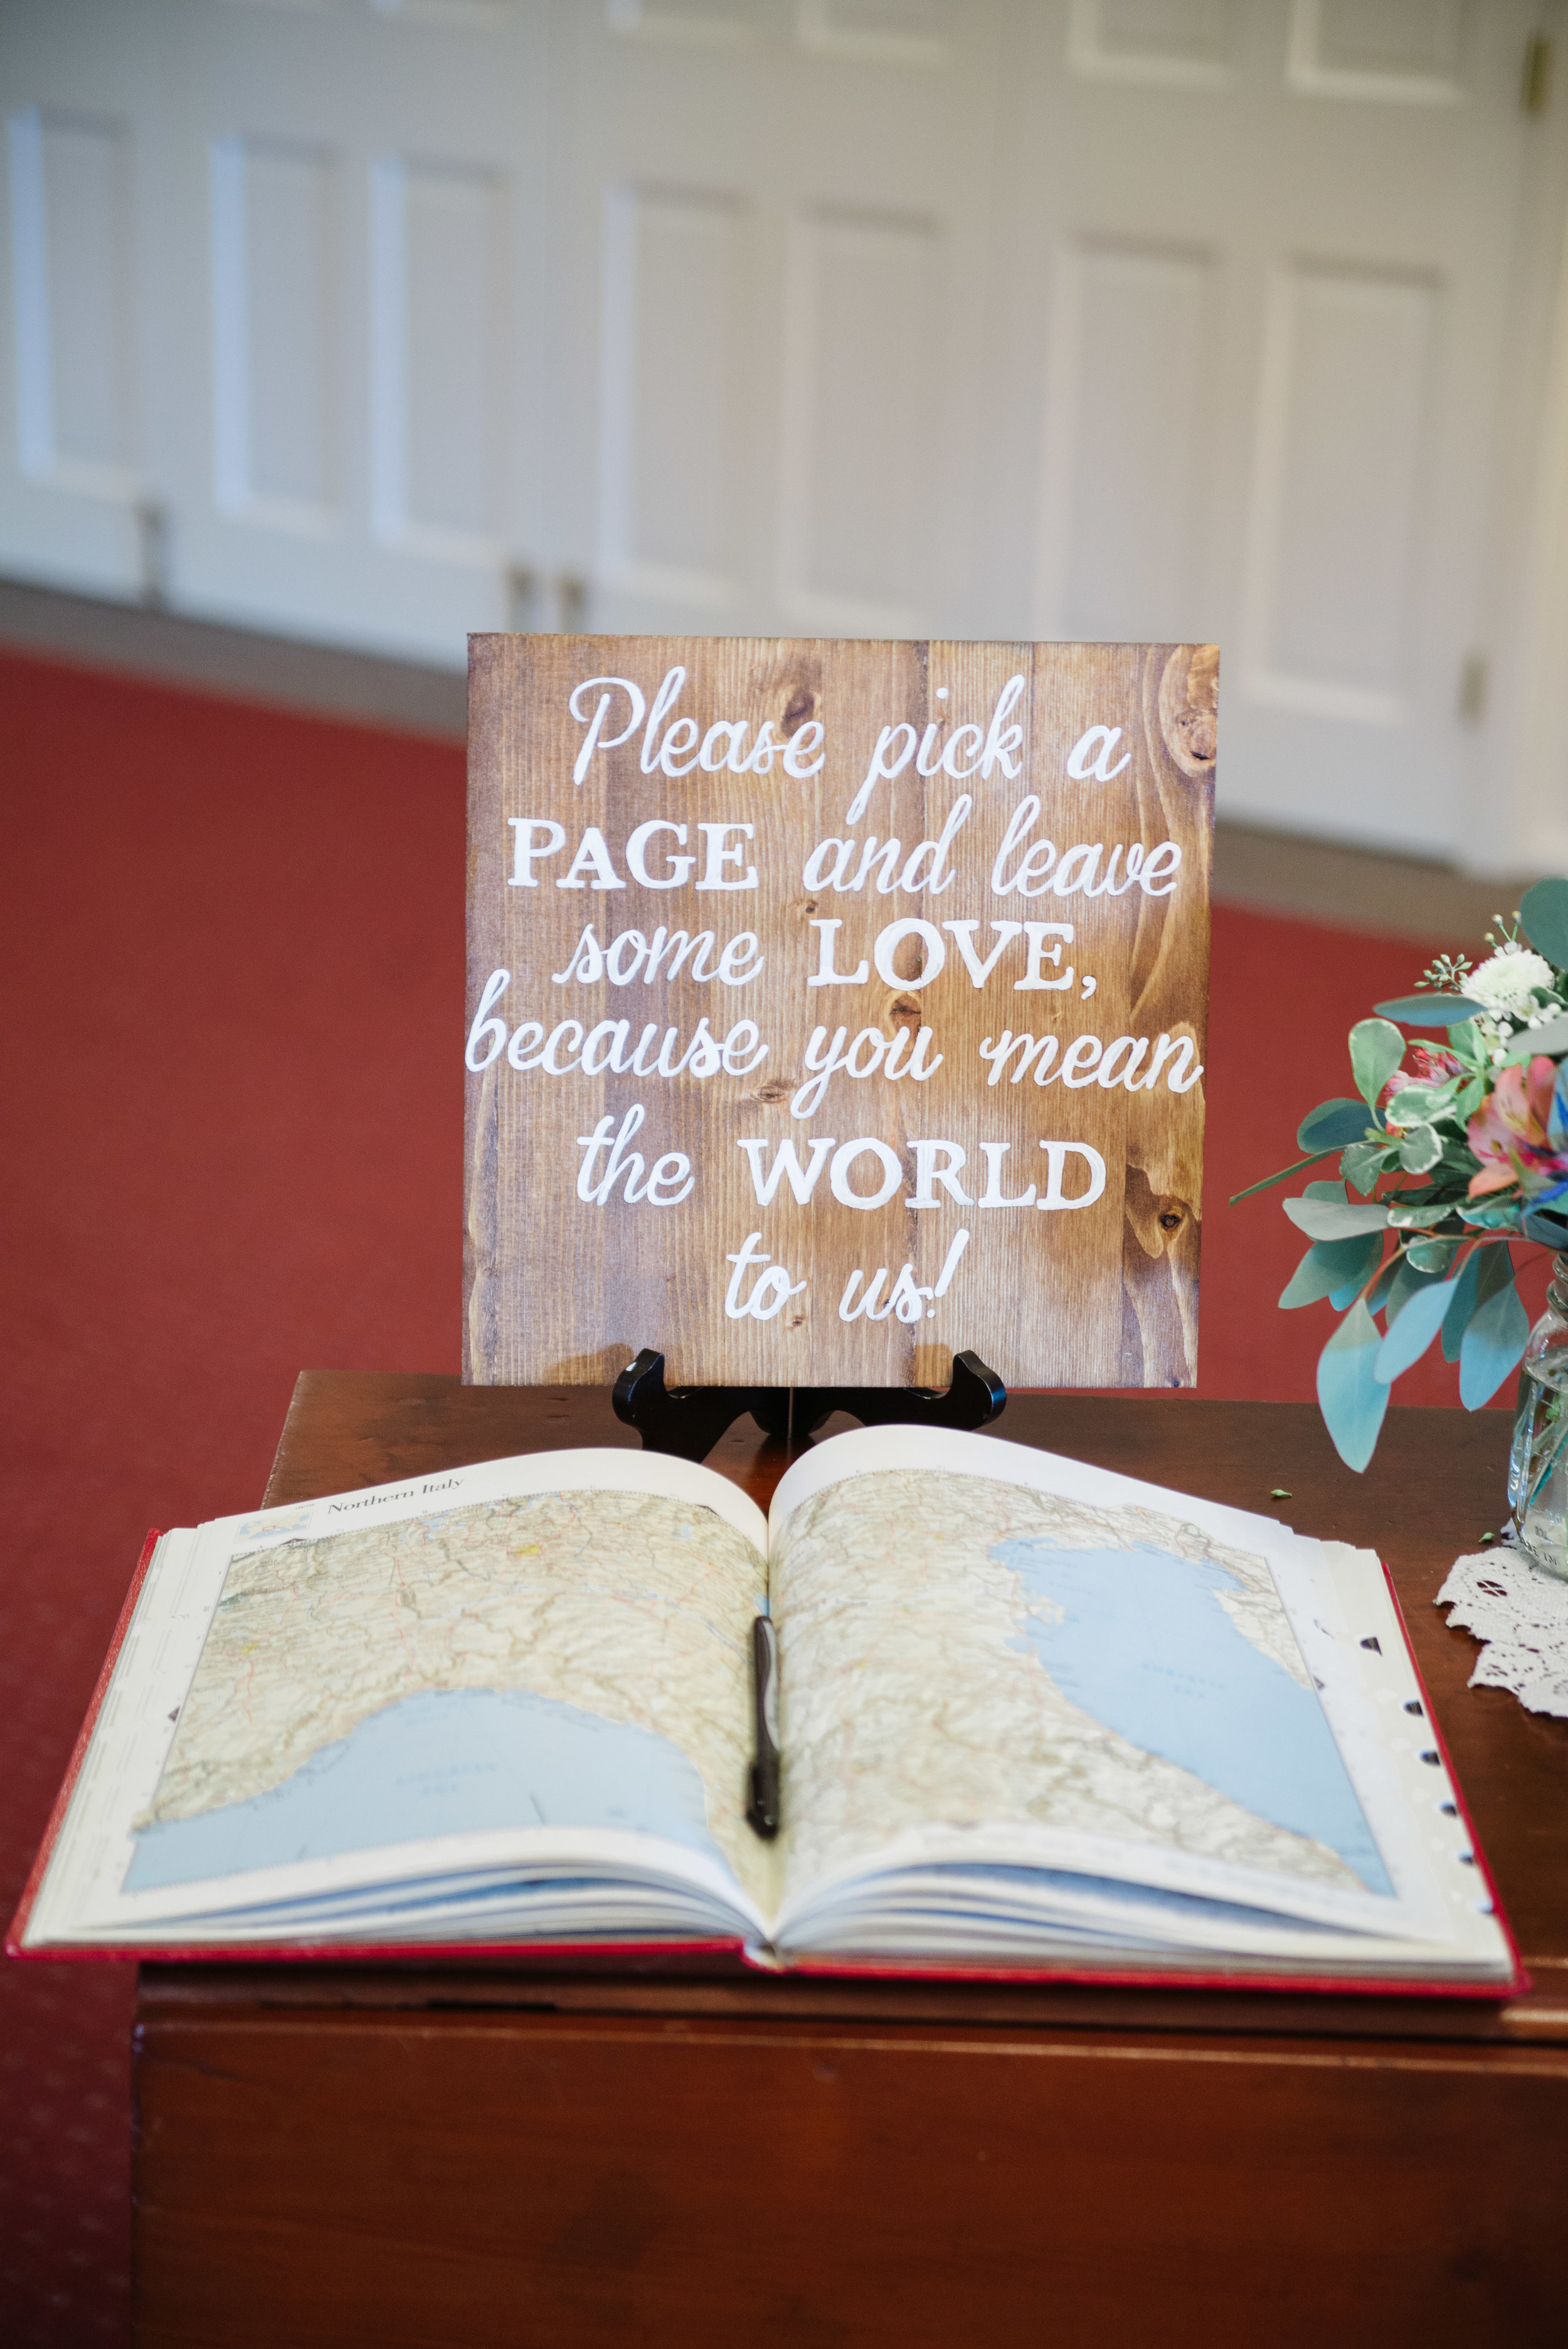 Our guest book was an atlas